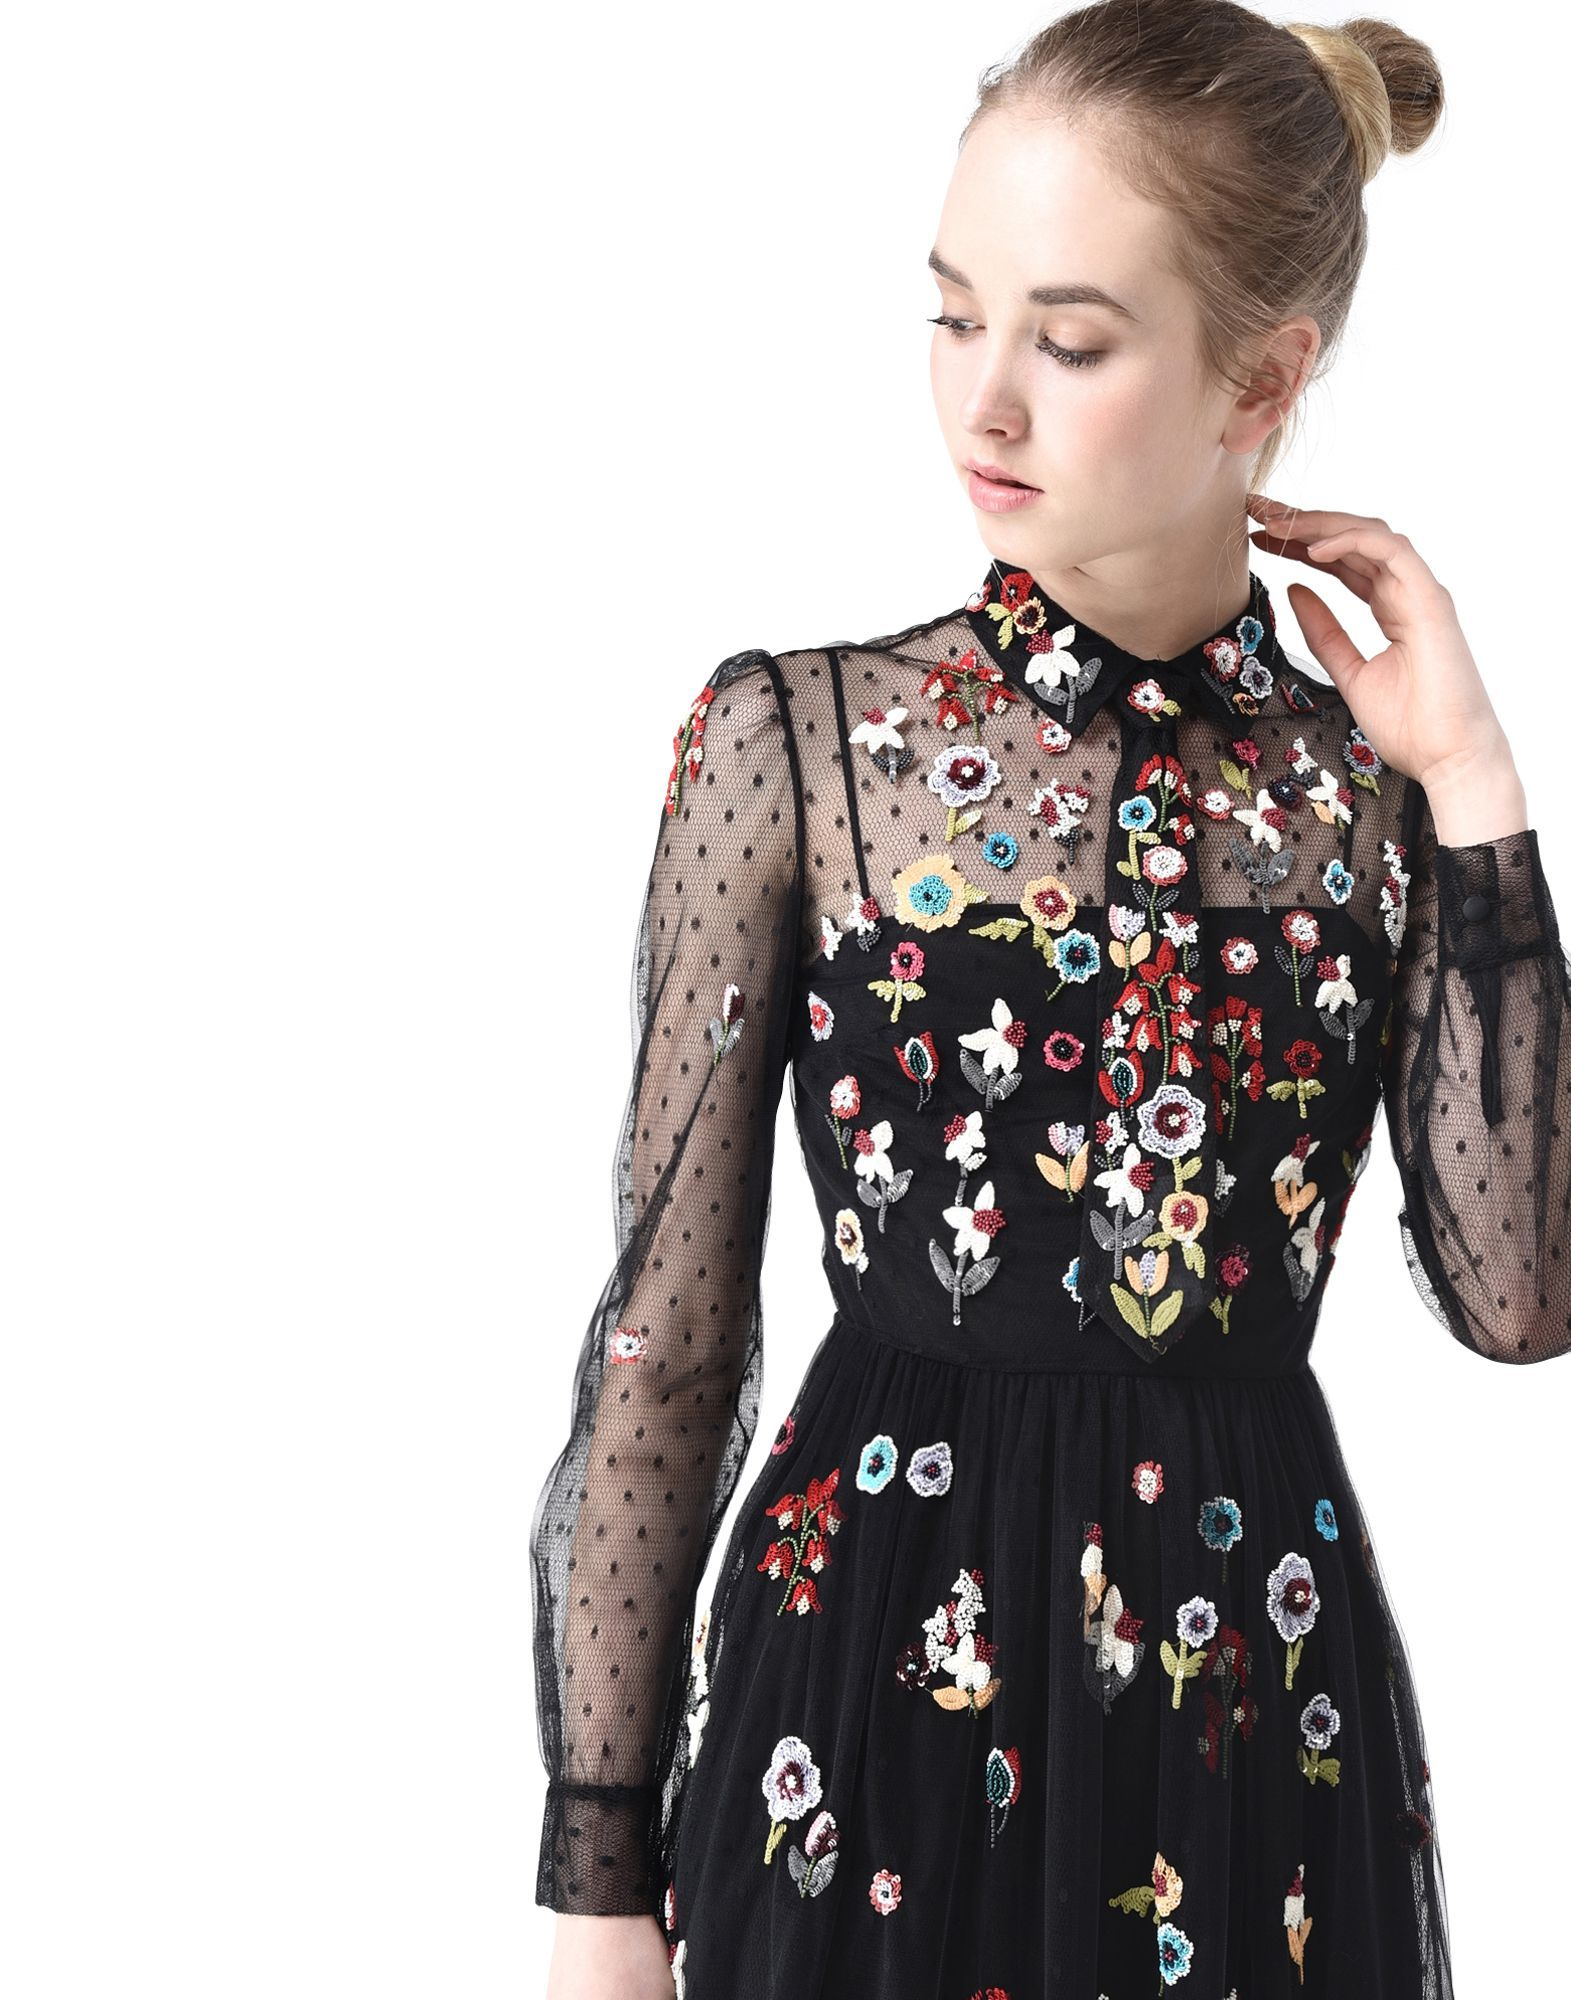 fef55ea60dc RED Valentino Fancy Flower Embroidered Tulle Dress - Dress Women ...